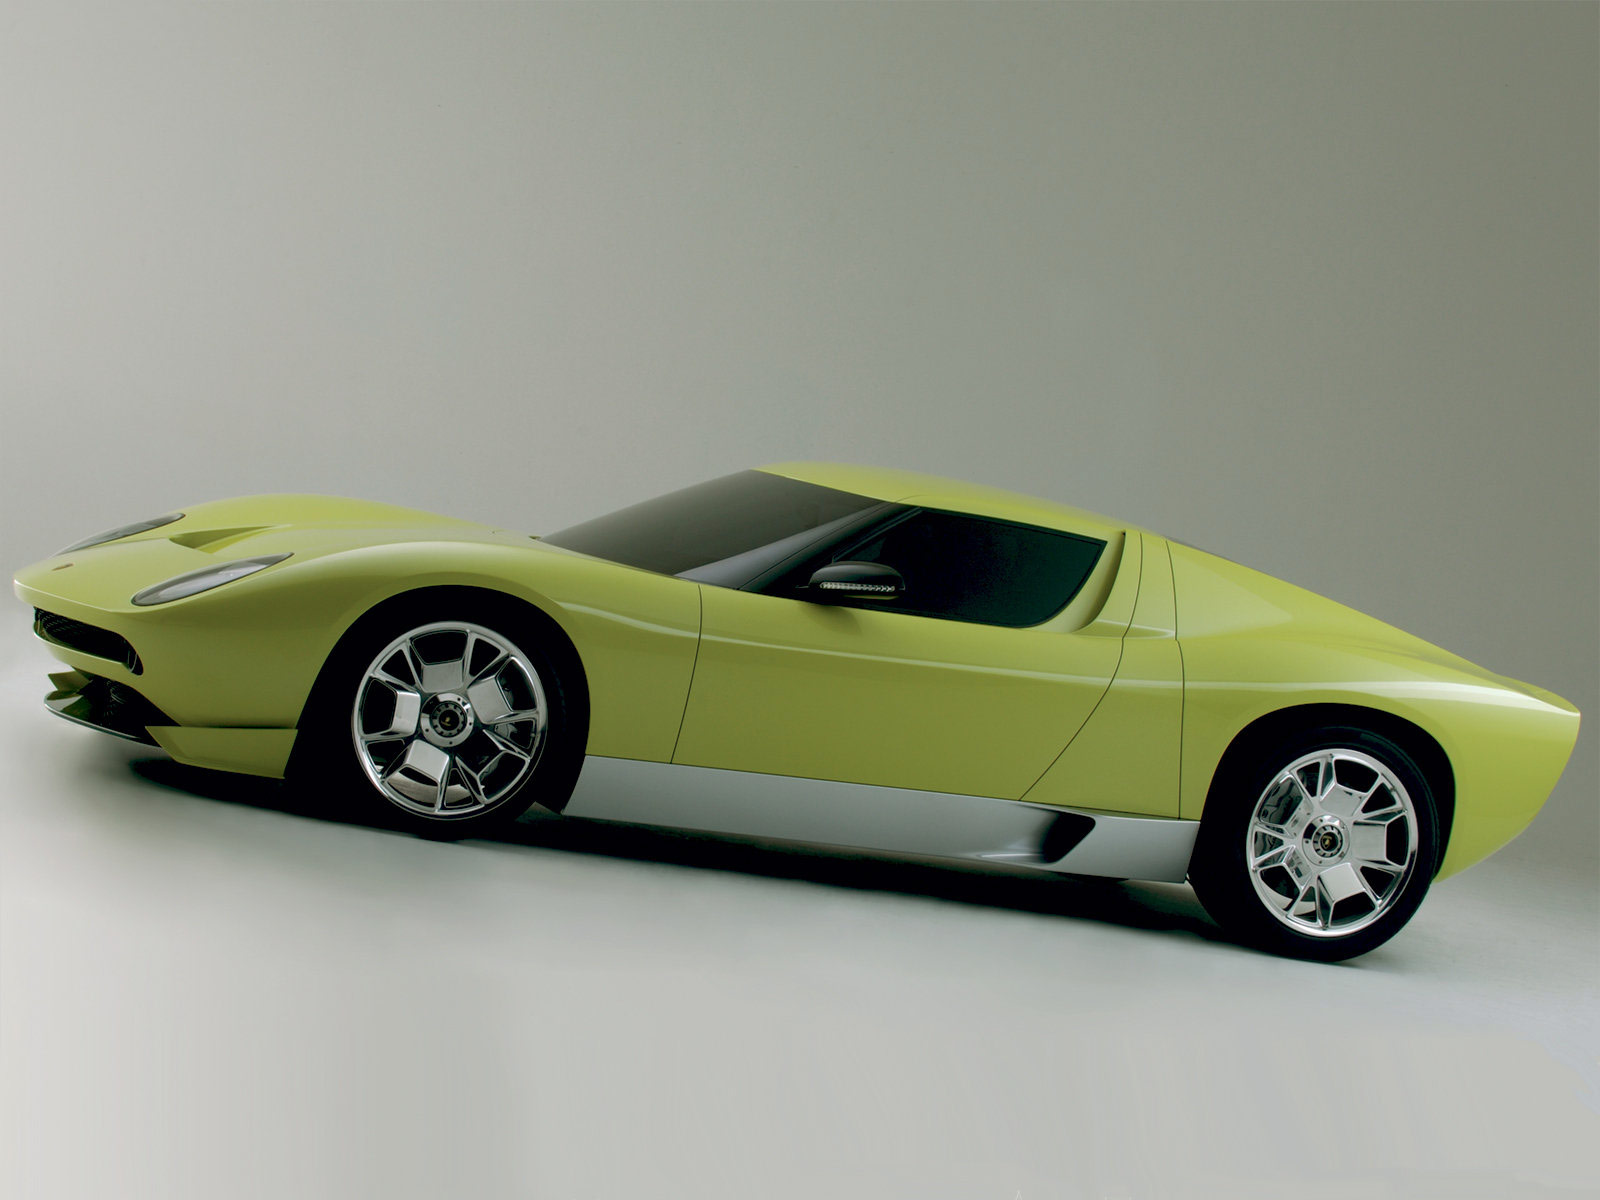 How Much Is A Lambo >> LAMBORGHINI pictures, 2006 Miura Concept, accident lwayers ...